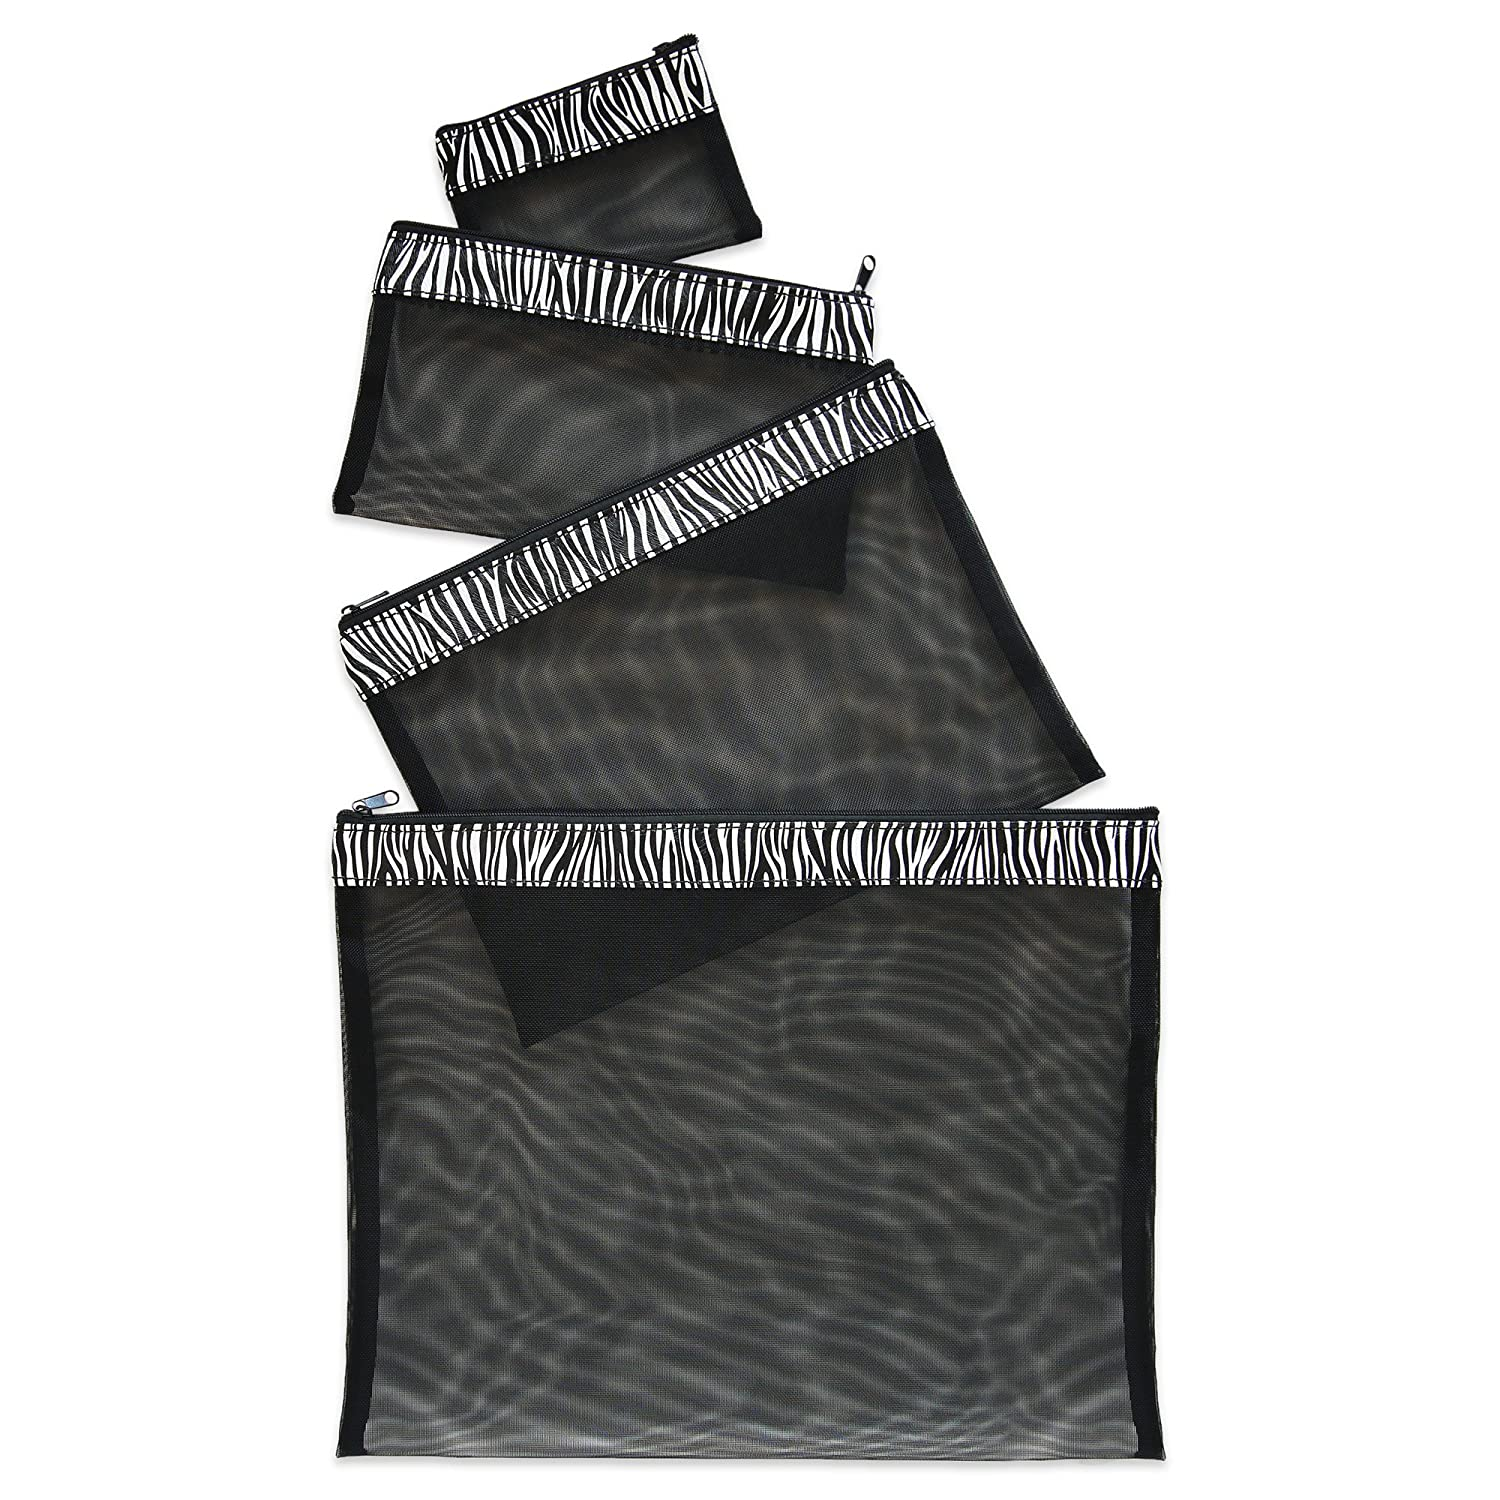 Multi Purpose 4 Piece Mesh Bag Set for Travel, Office Supplies, Cosmetic, Paper, Bill and Credit Card Bag (Zebra)